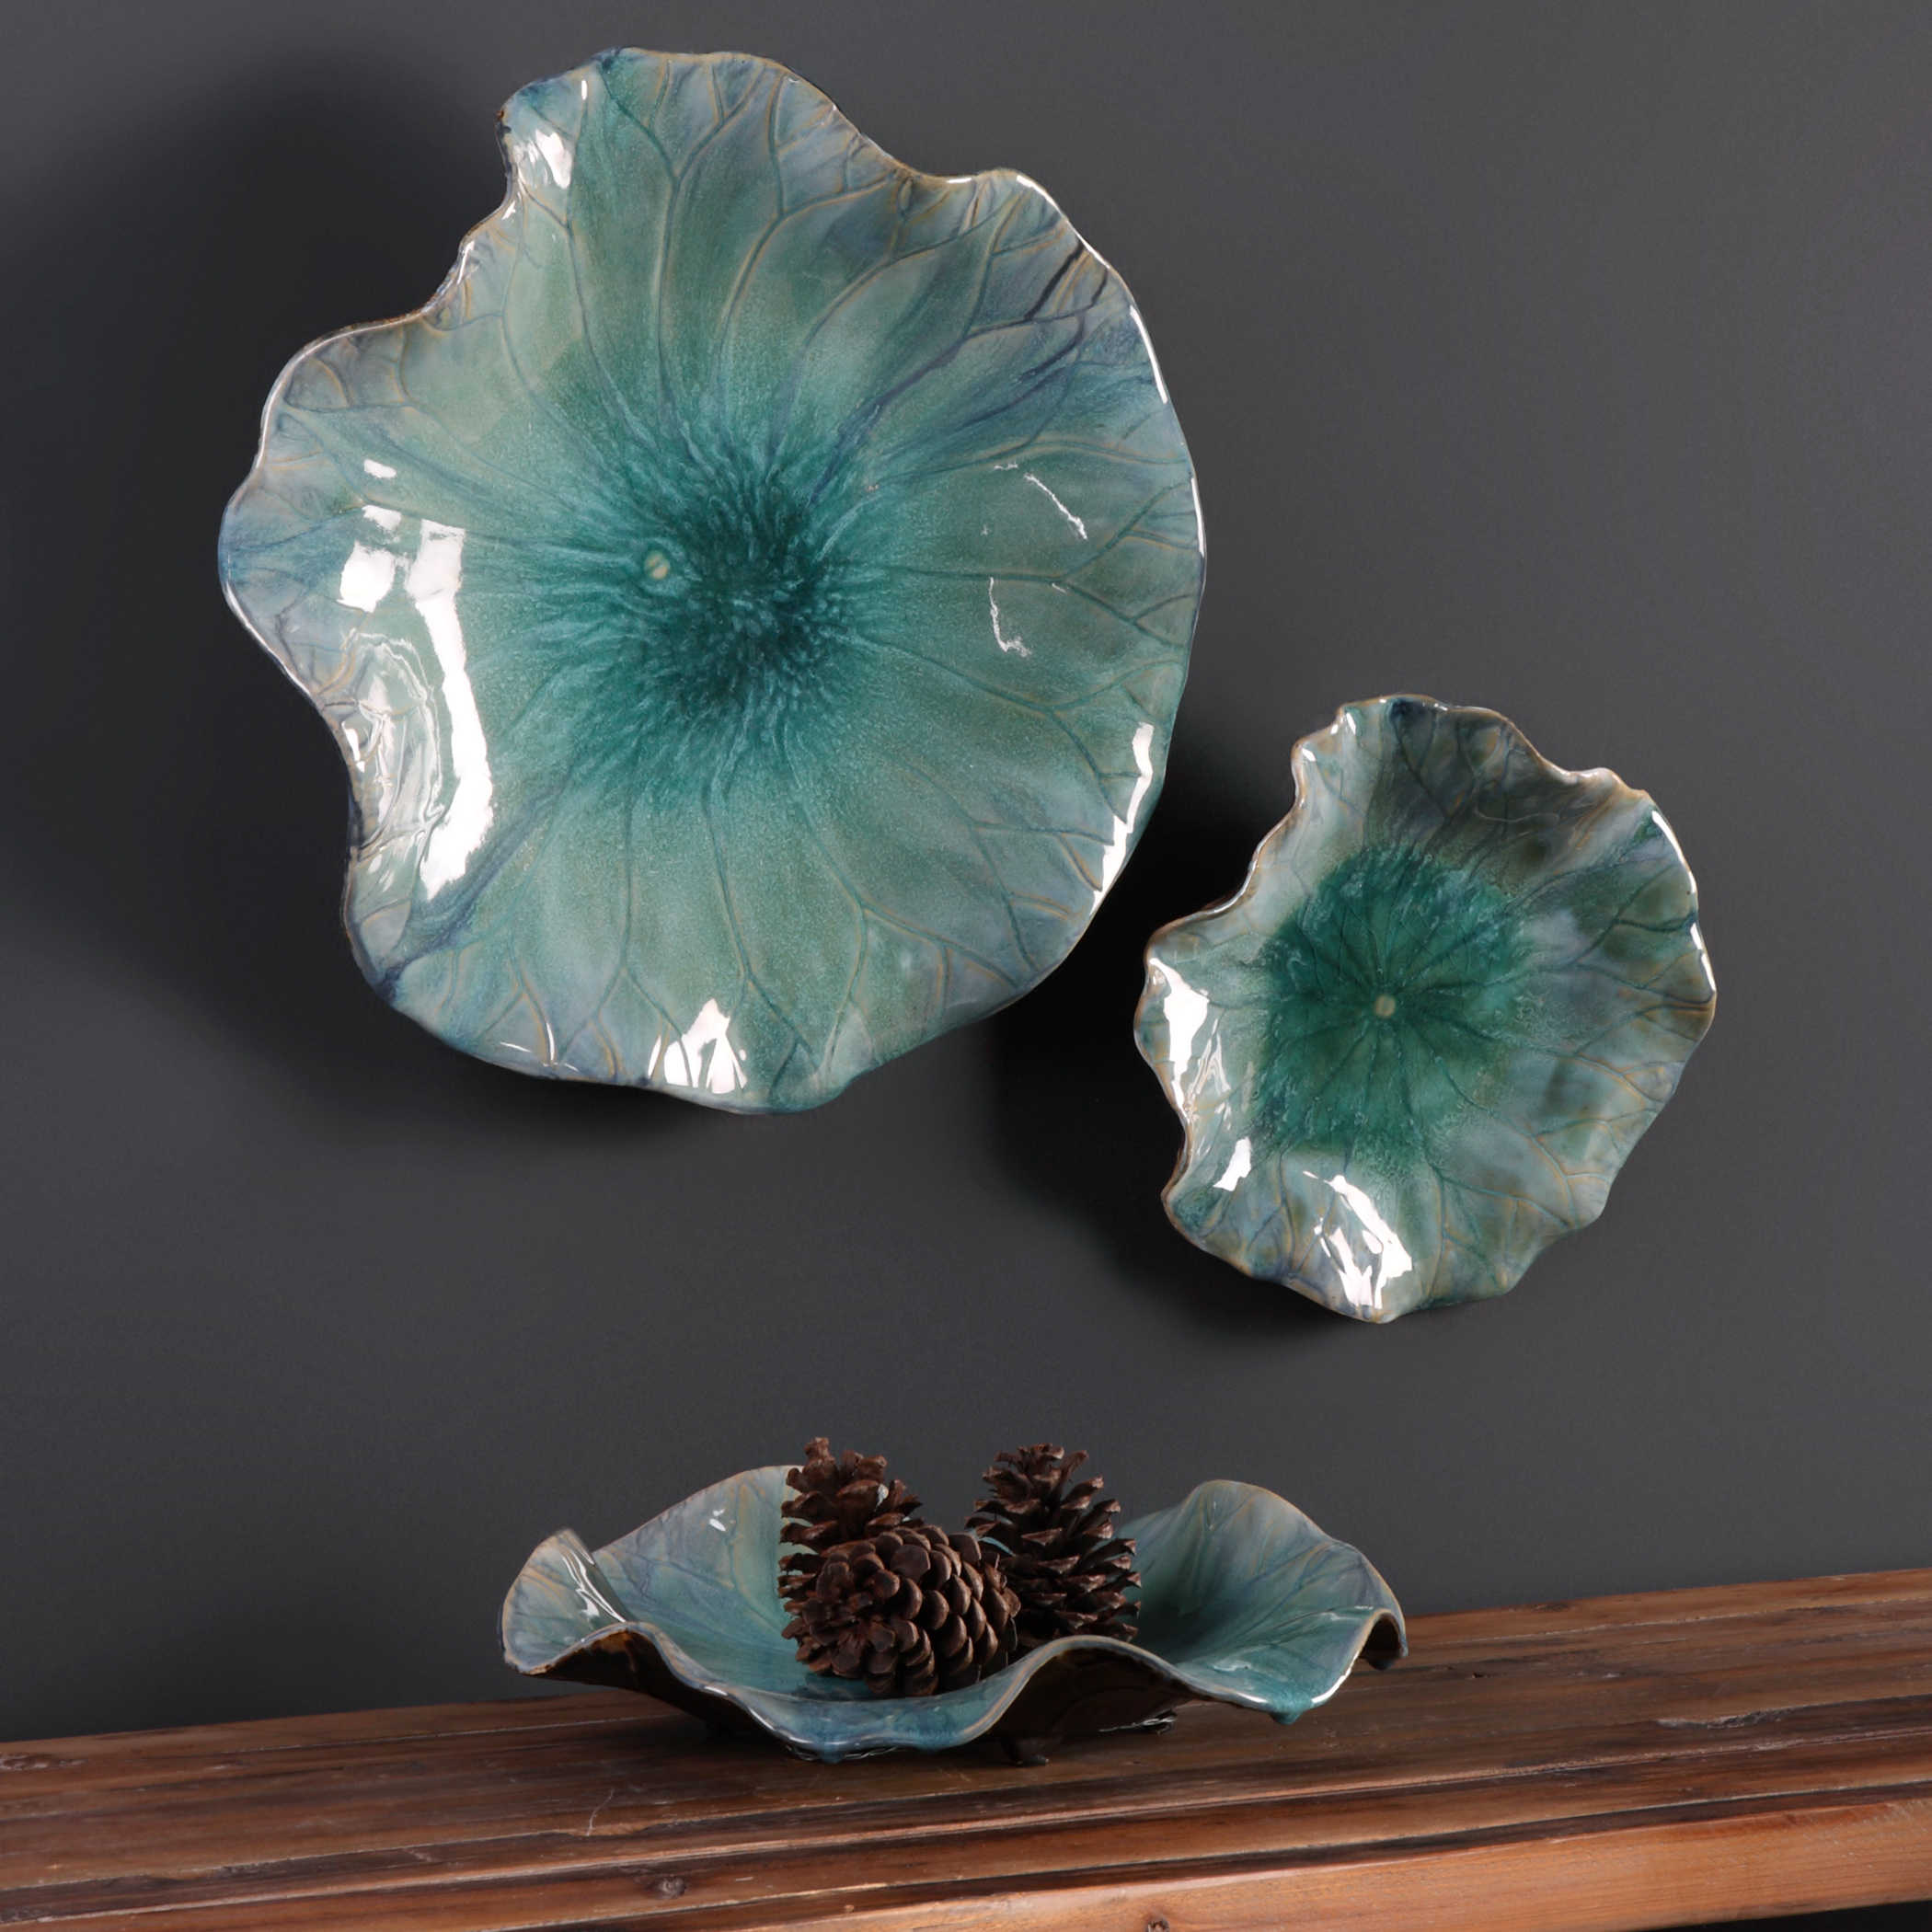 Uttermost Abella Ceramic Flowers, S/3 on Hanging Wall Sconces For Flowers id=29123